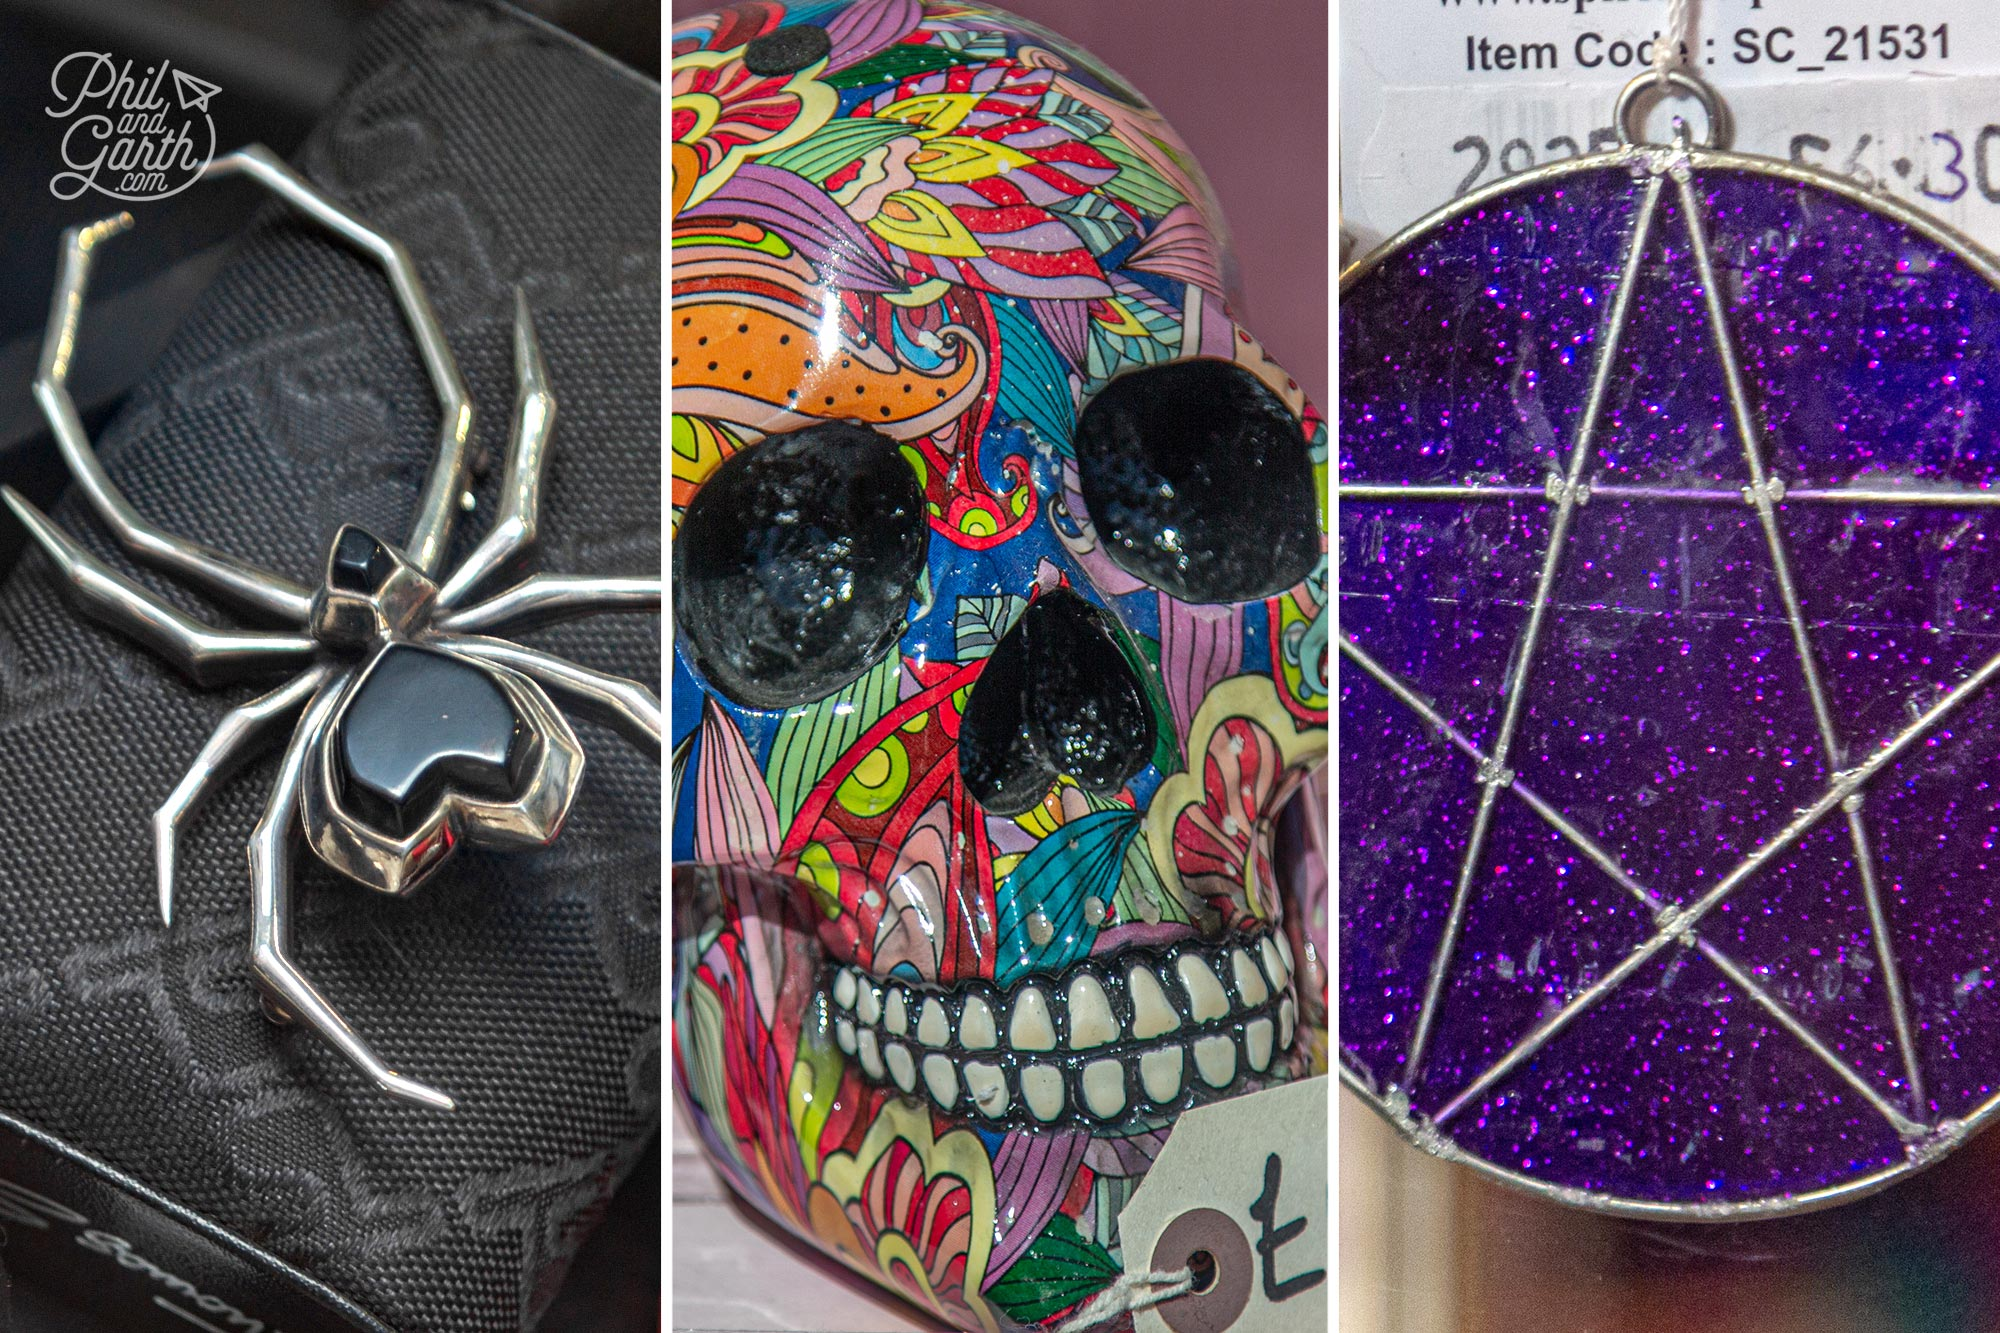 Gothic gifts for sale in Whitby's old town